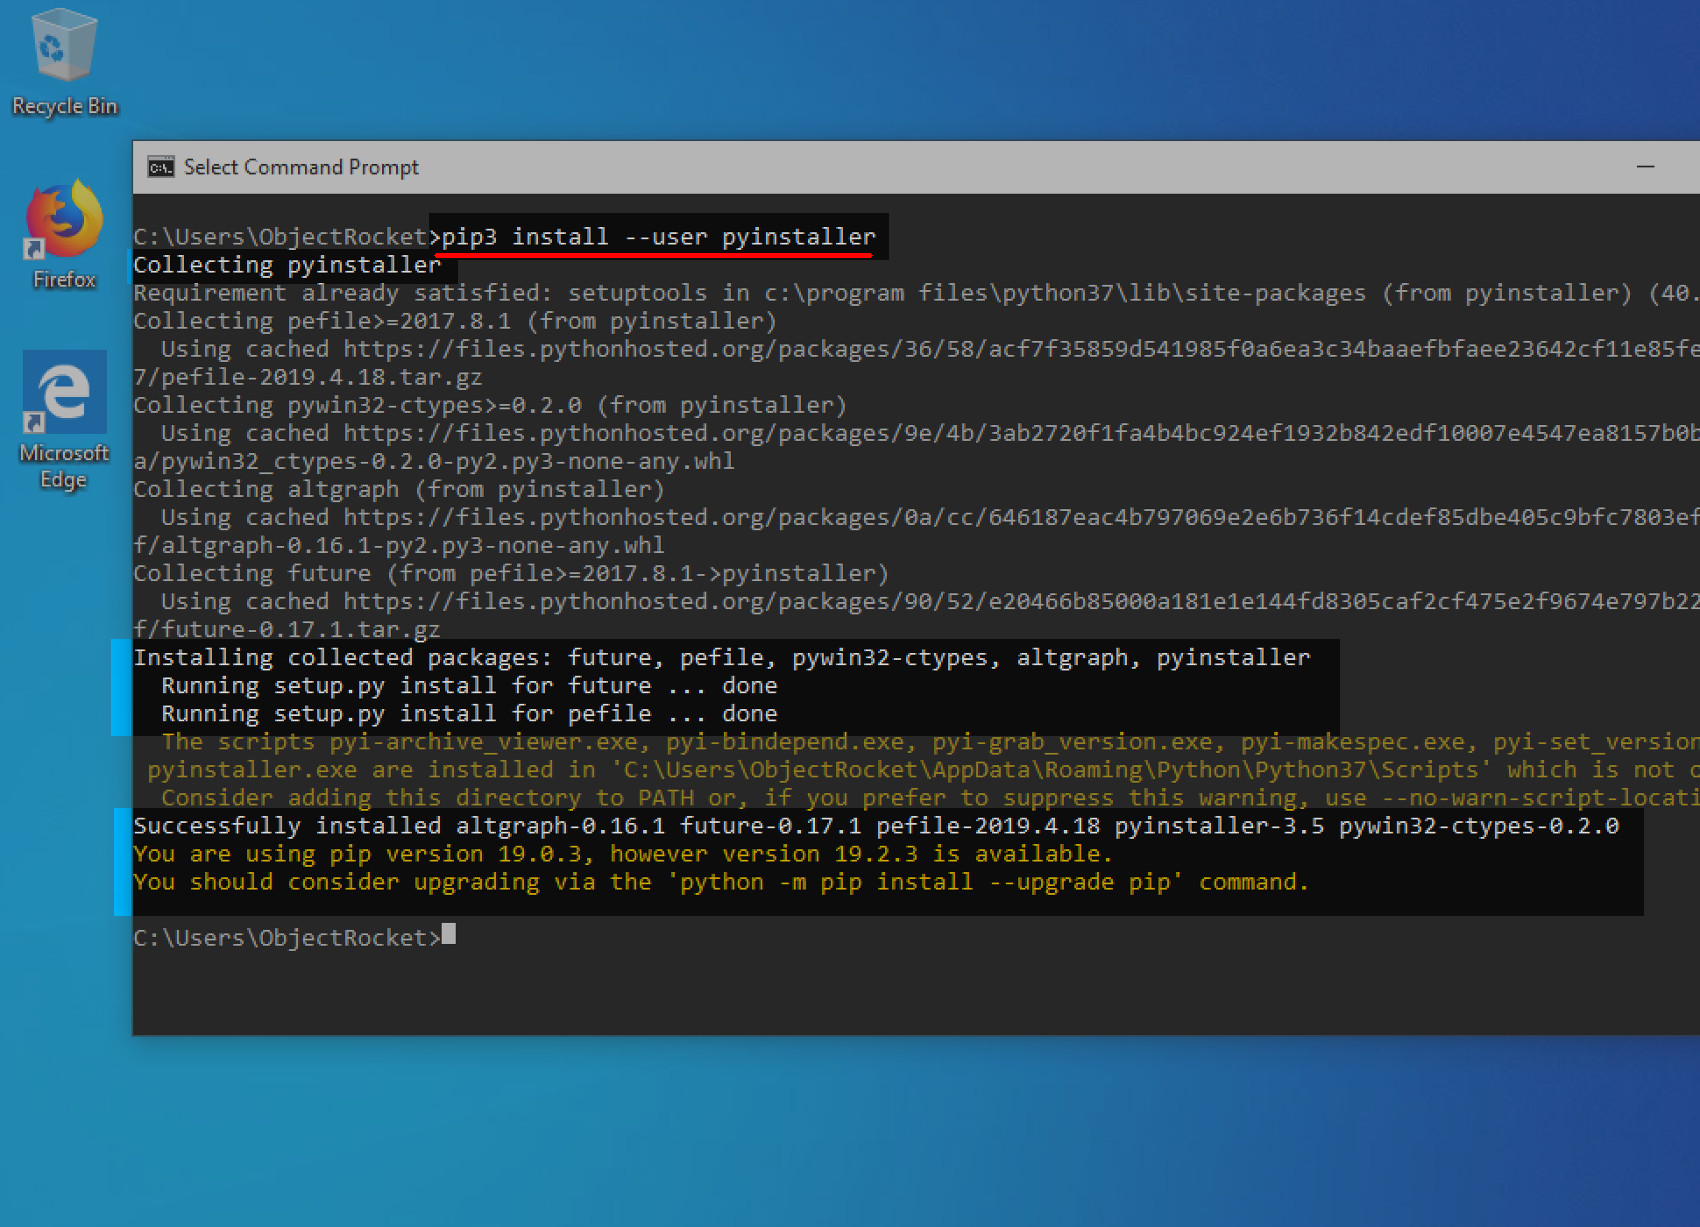 Screenshot of Windows command prompt installing the PyInstaller library with the PIP3 Python package manager